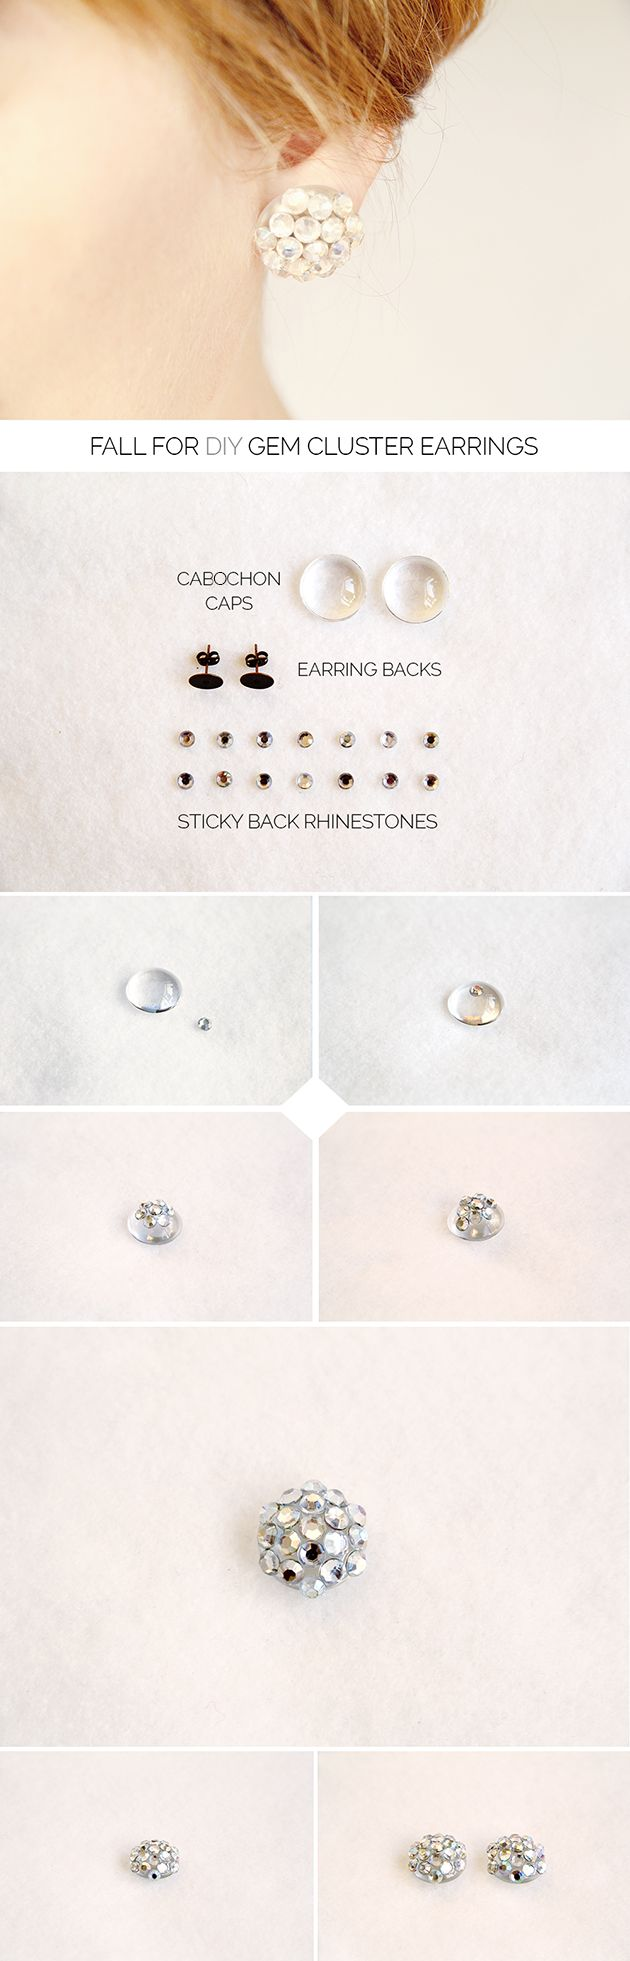 Beautiful gem cluster earrings will definitely have to give these a try